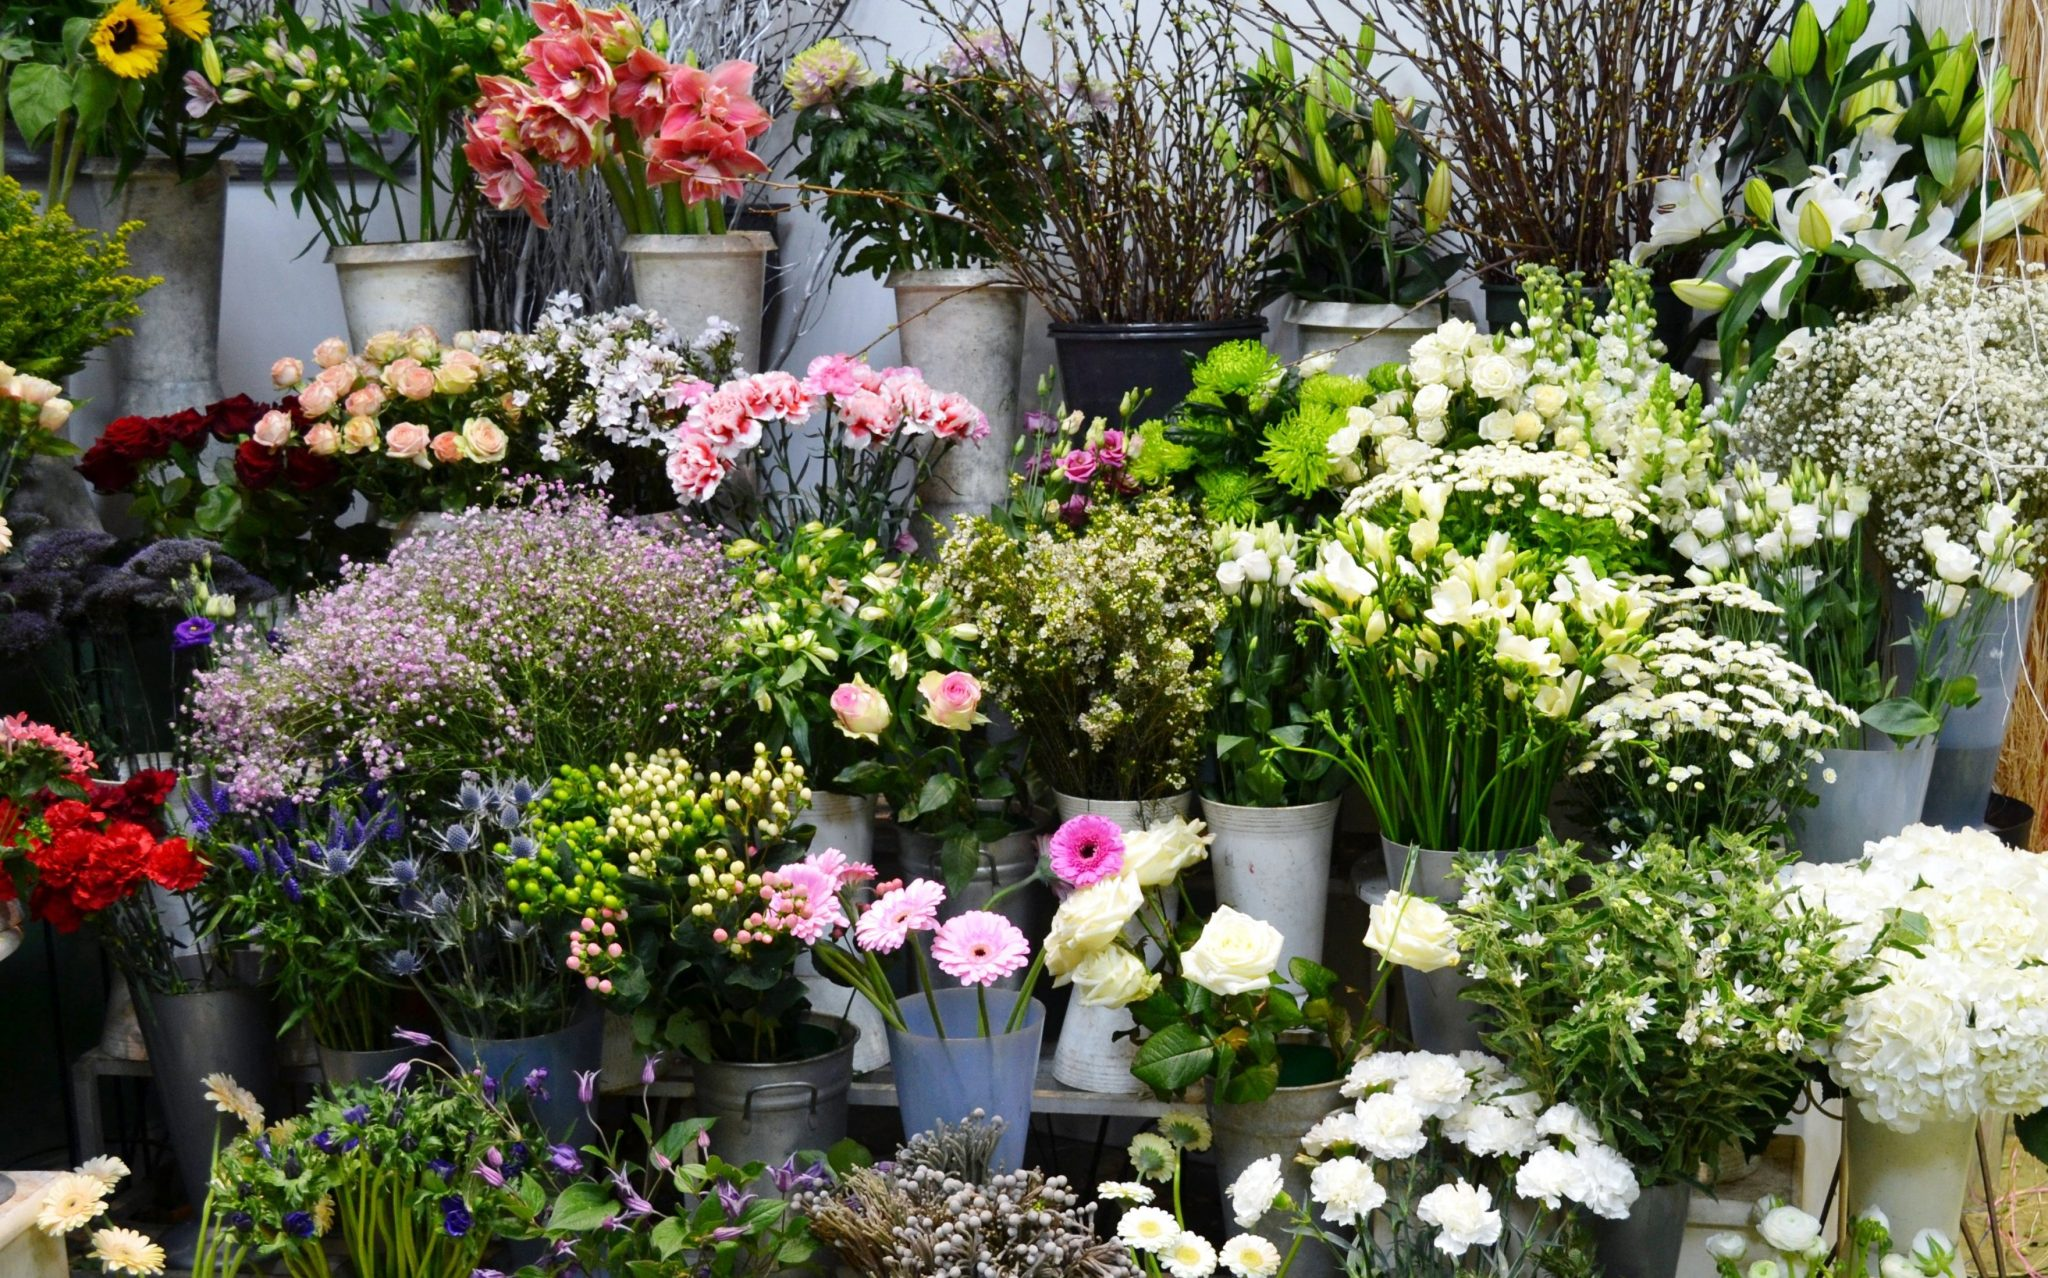 A colourful display at Floral Gallery